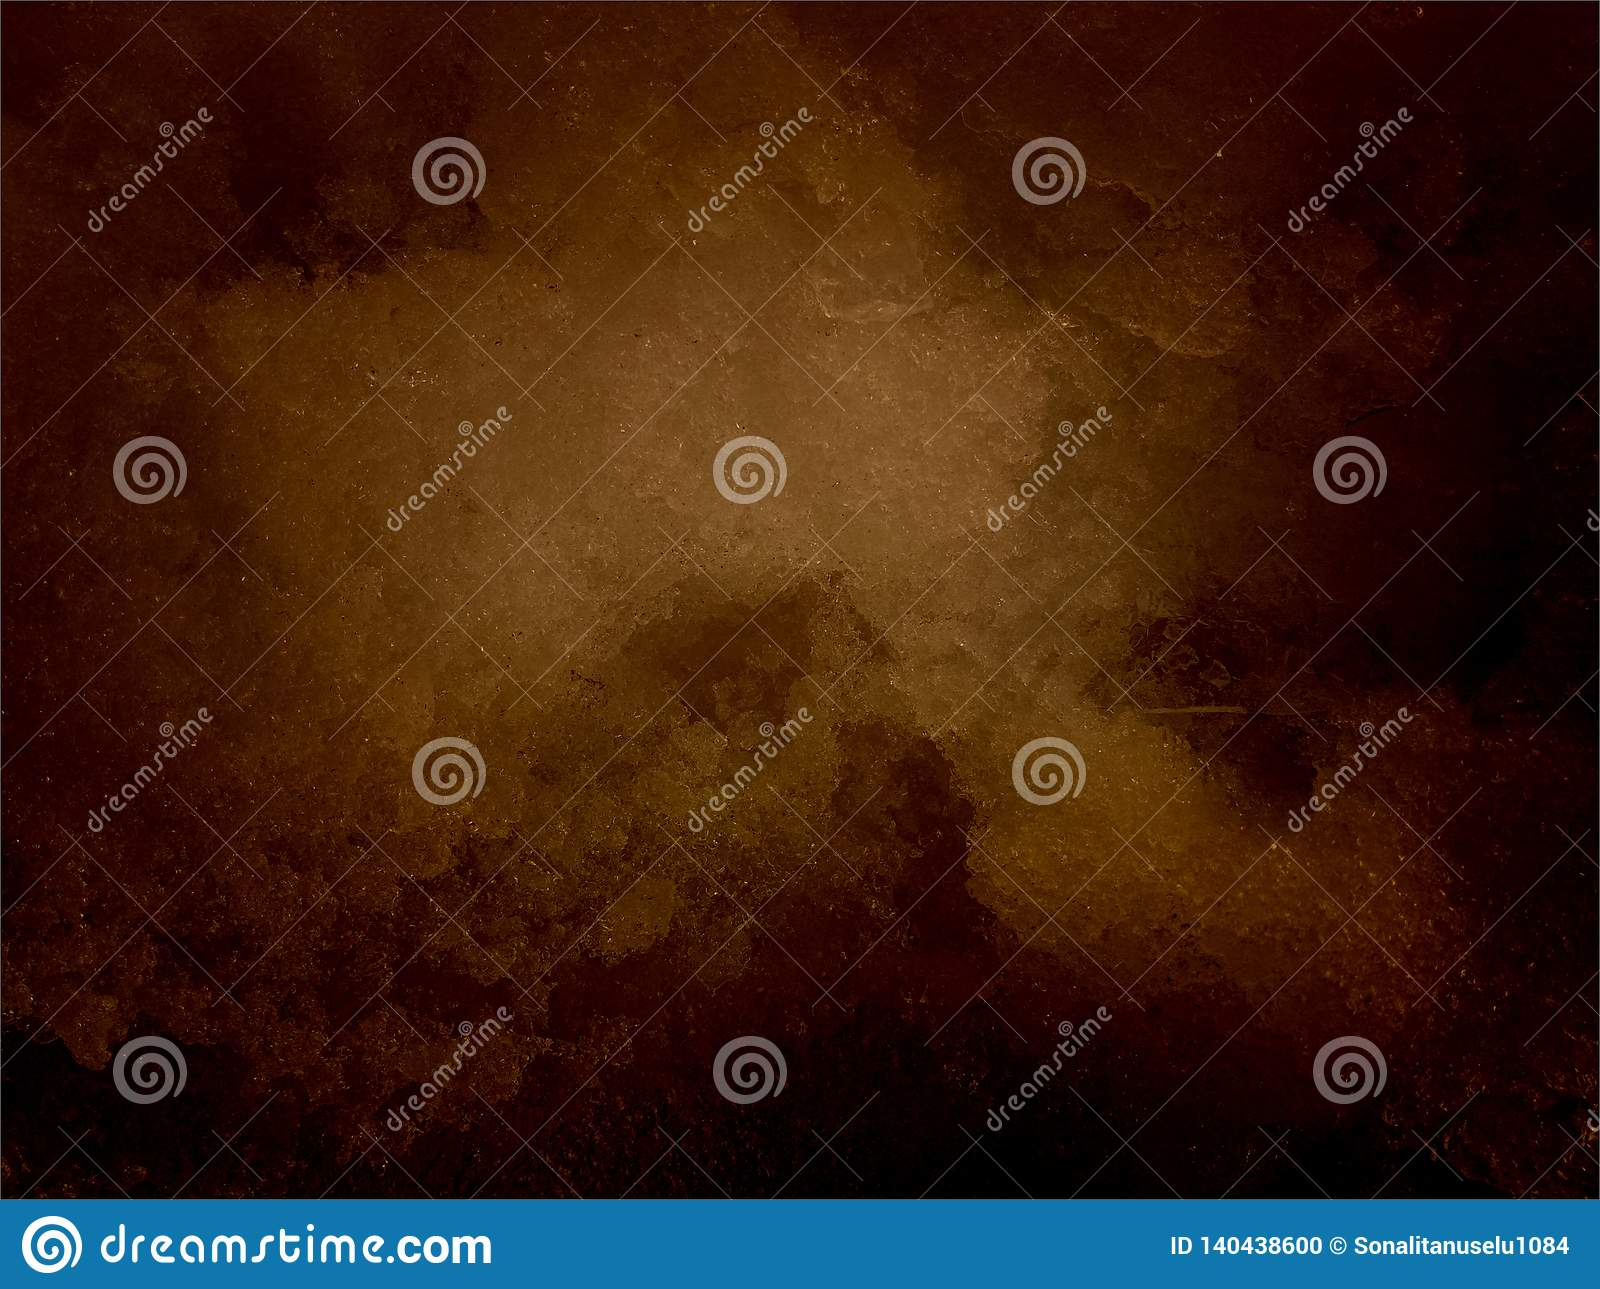 Abstract brown shaded textured background. paper grunge background texture. background wallpaper.